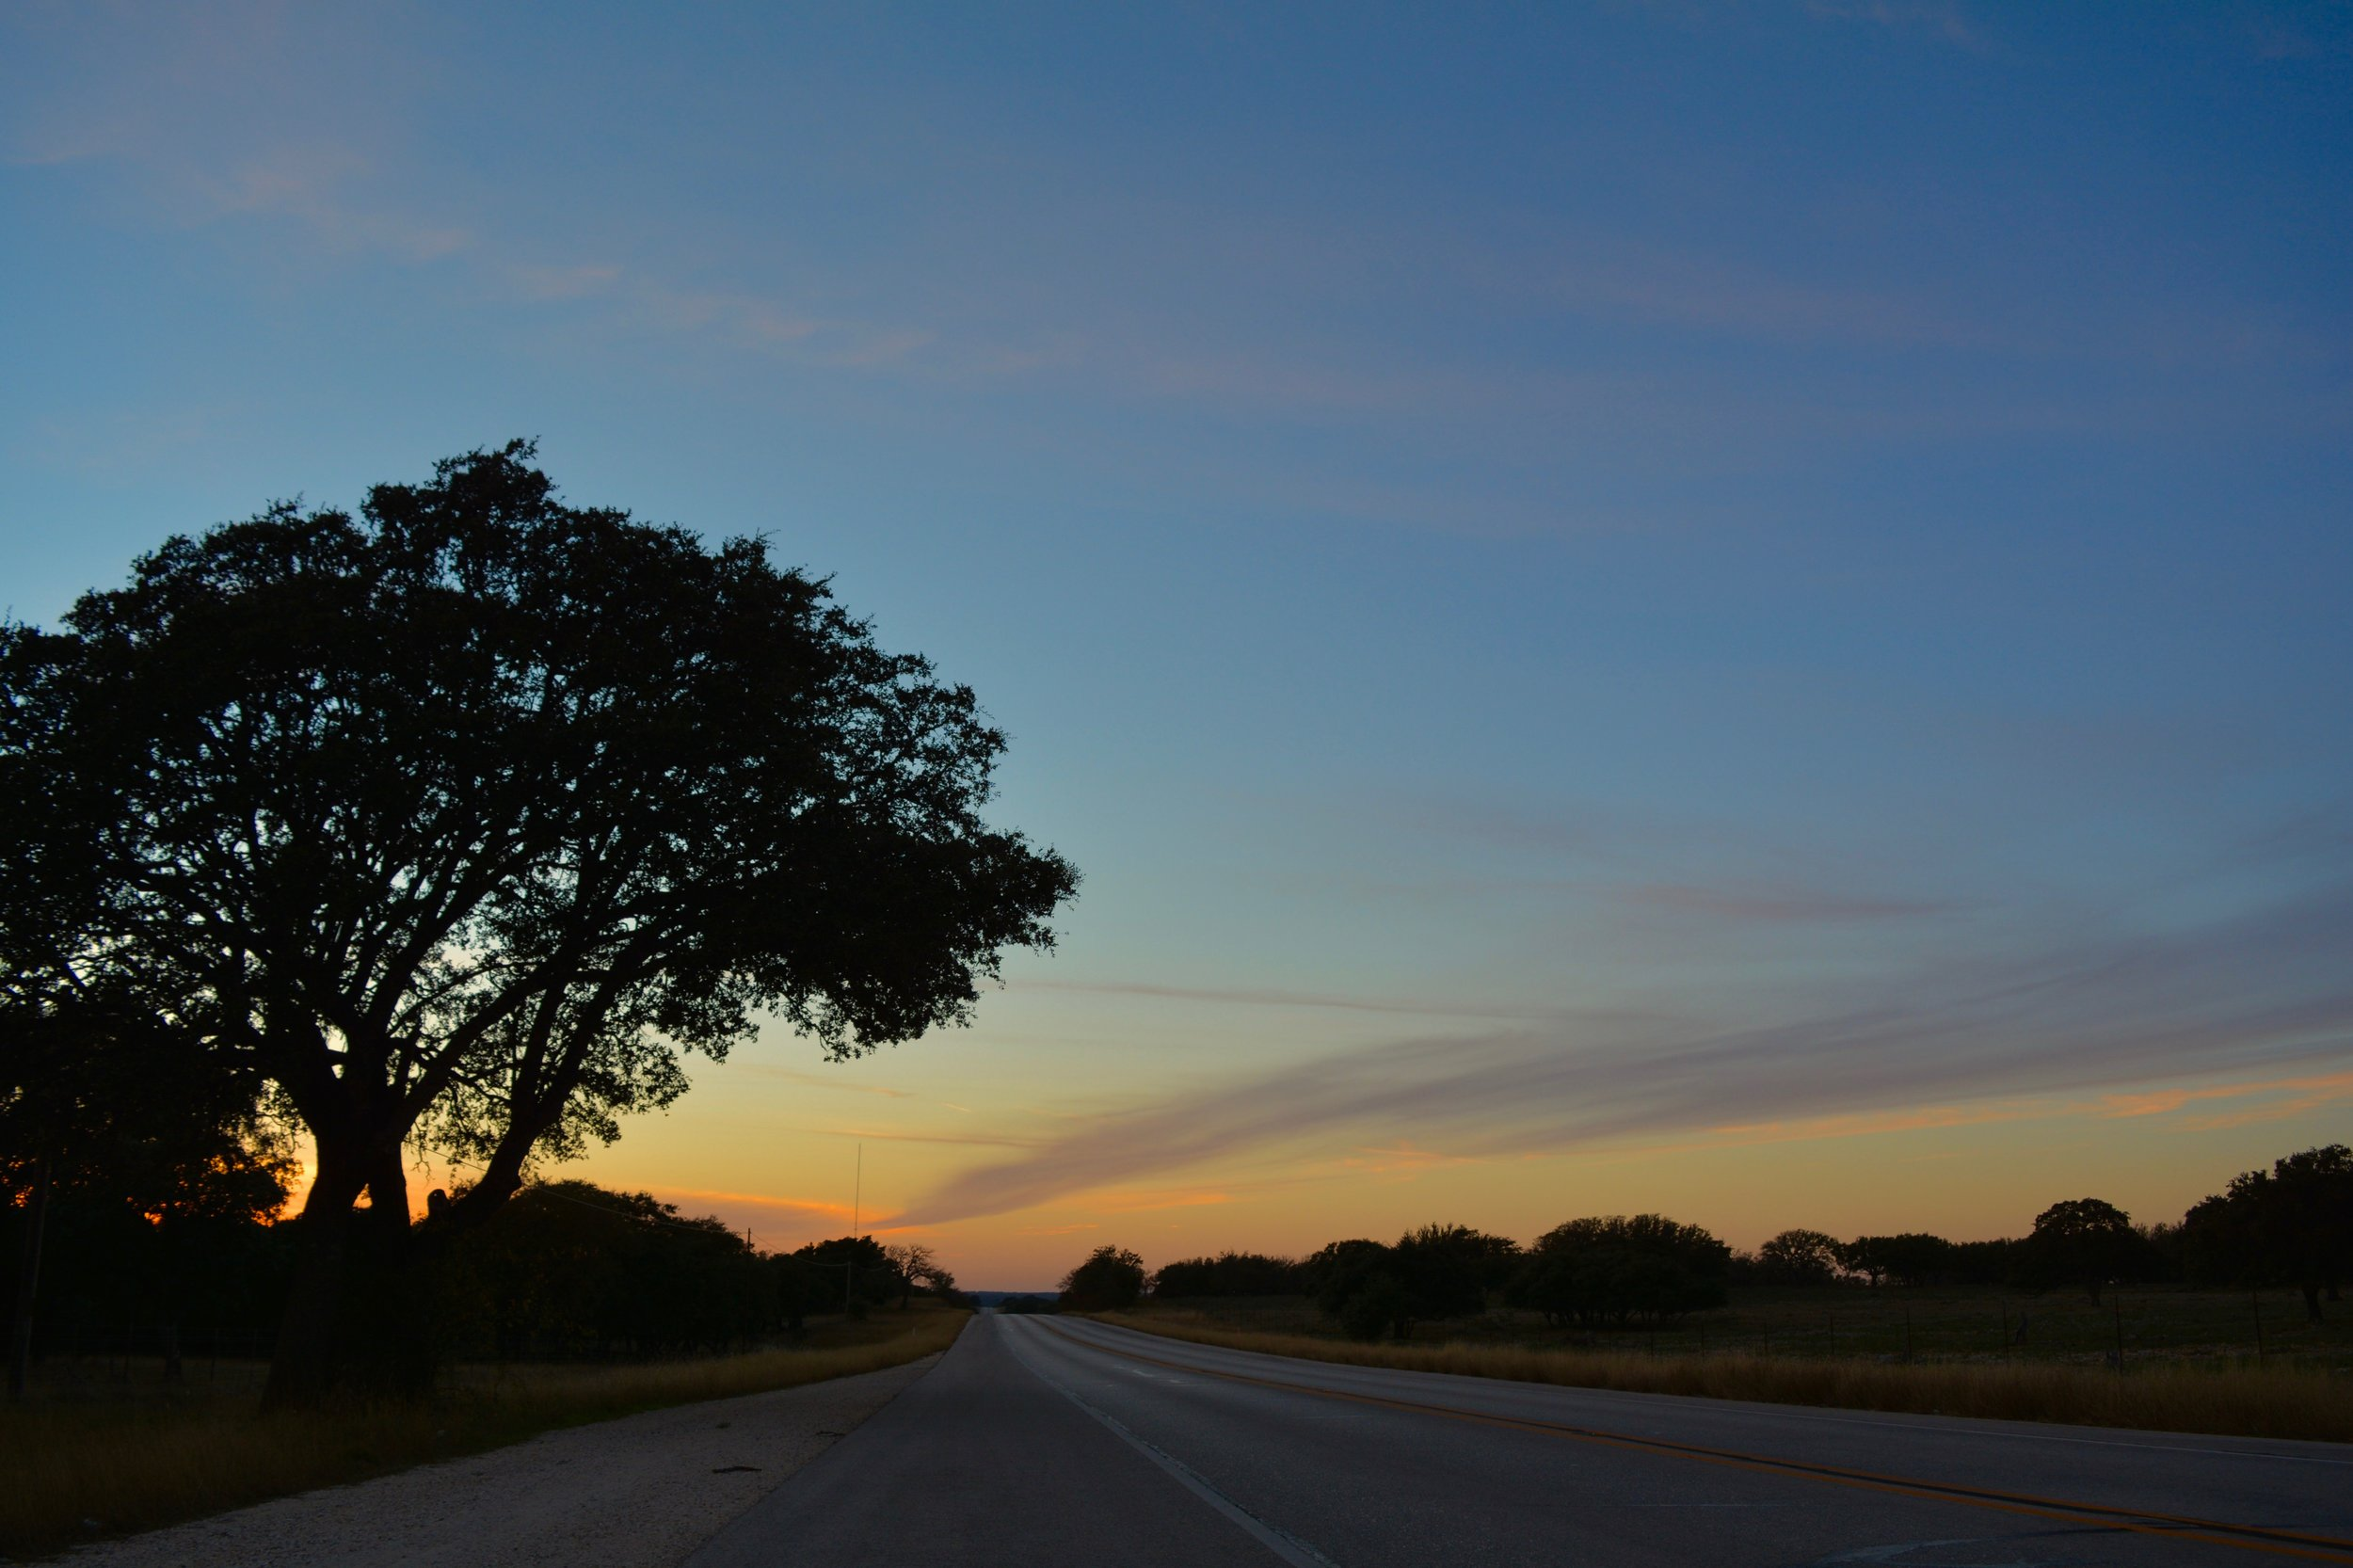 Sunset along Highway 290 in Texas